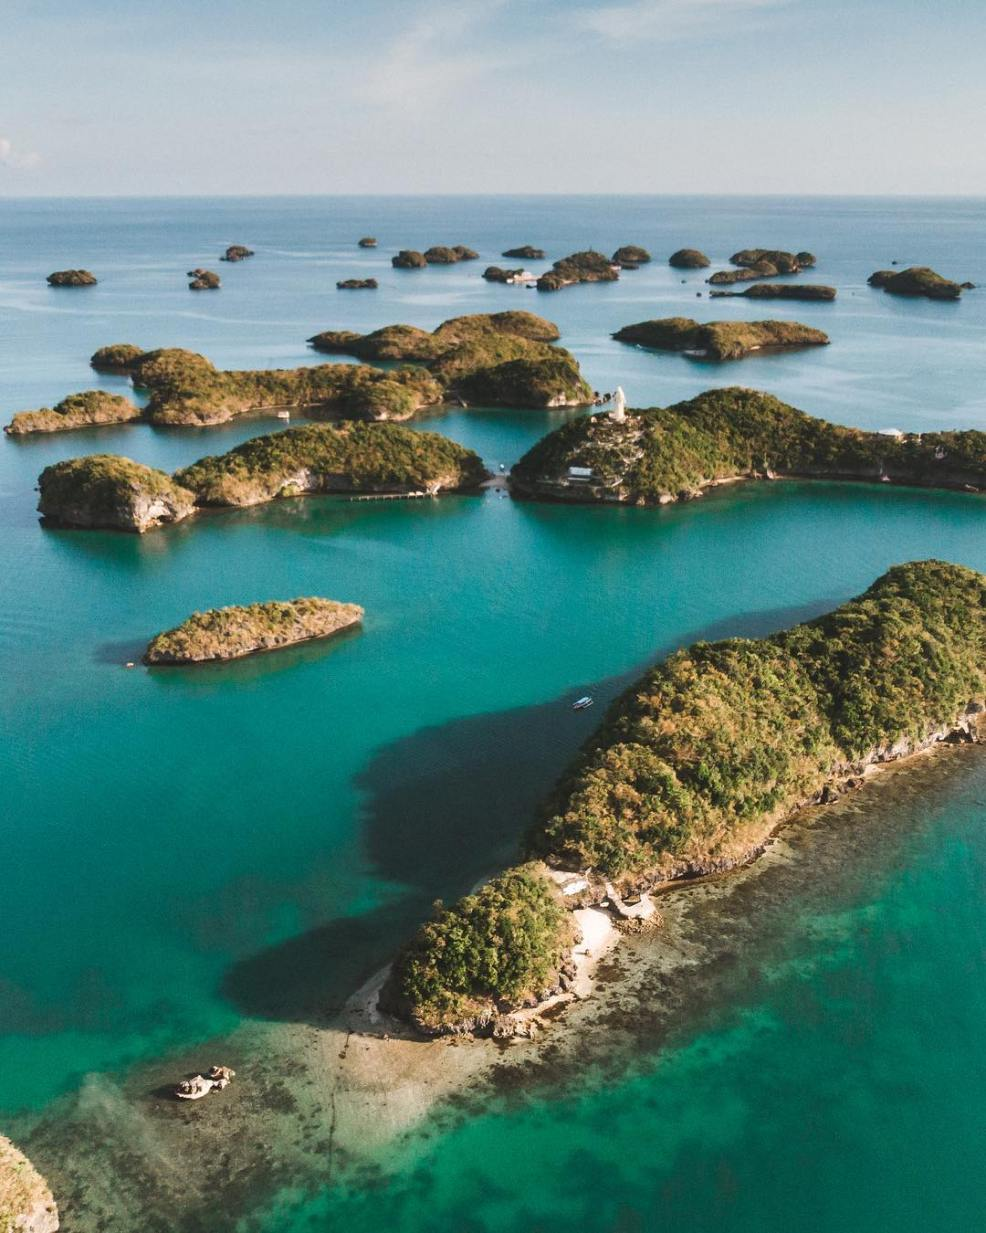 100 Islands, Hundred Islands Natural Park, tourist spots in the Philippines, Pangasinan